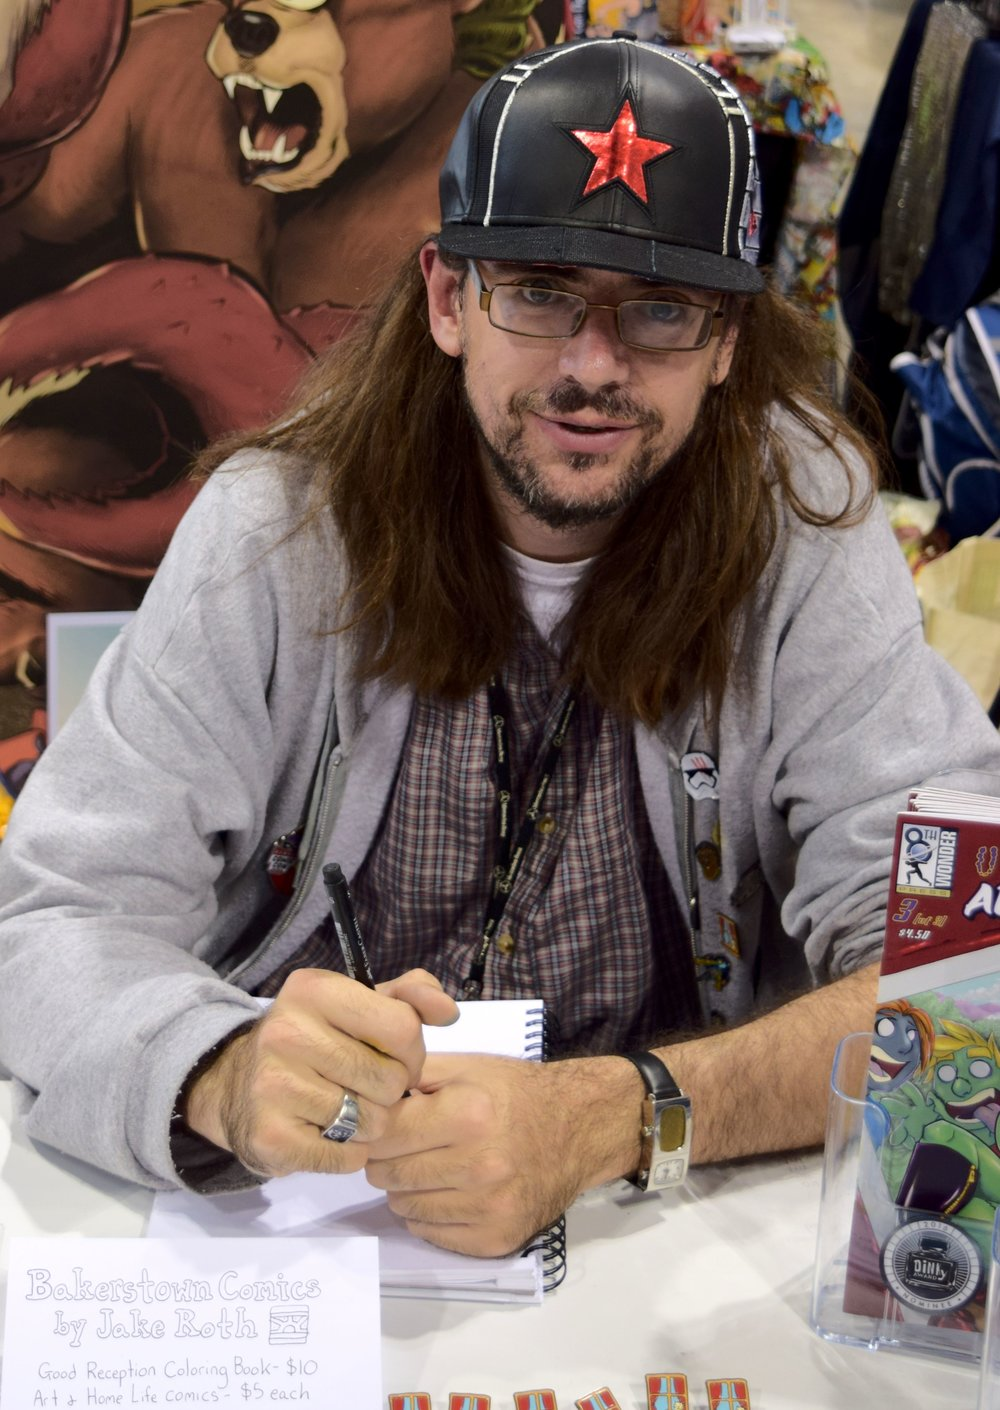 Jake Roth at Denver Comic Con 2017. (1)